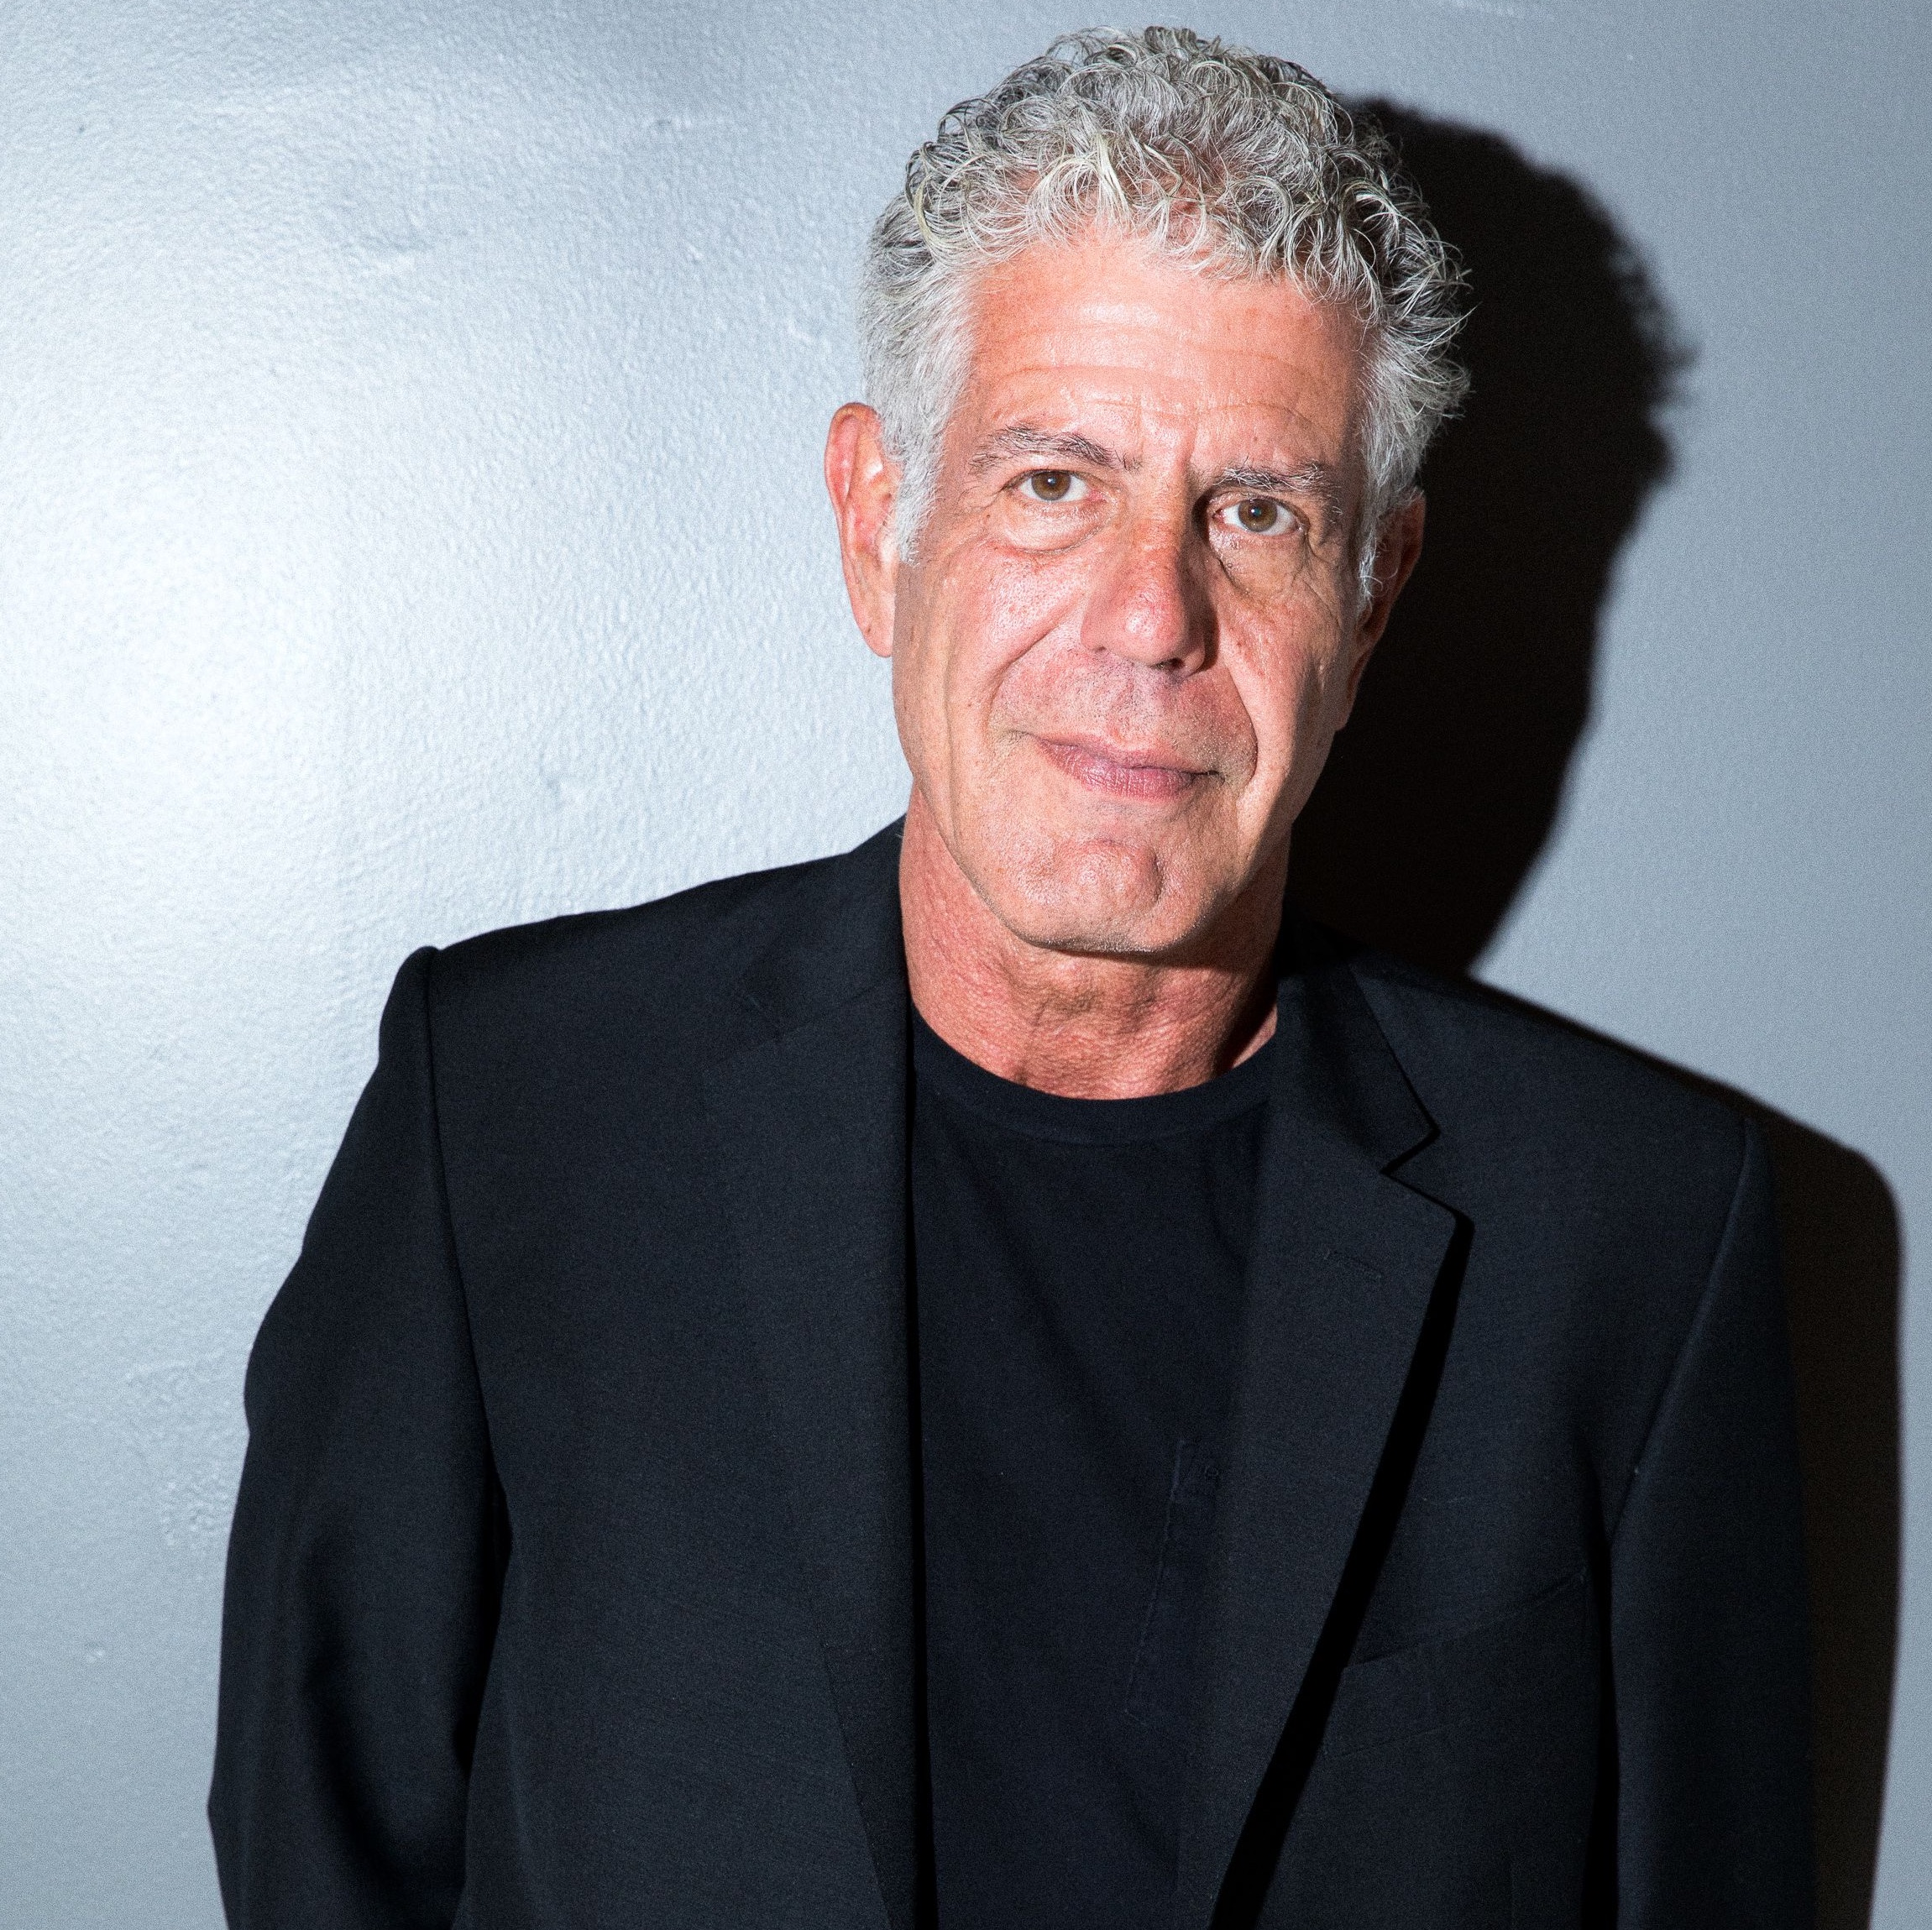 Anthony Bourdain On Asia Argento And How Movies Inspire